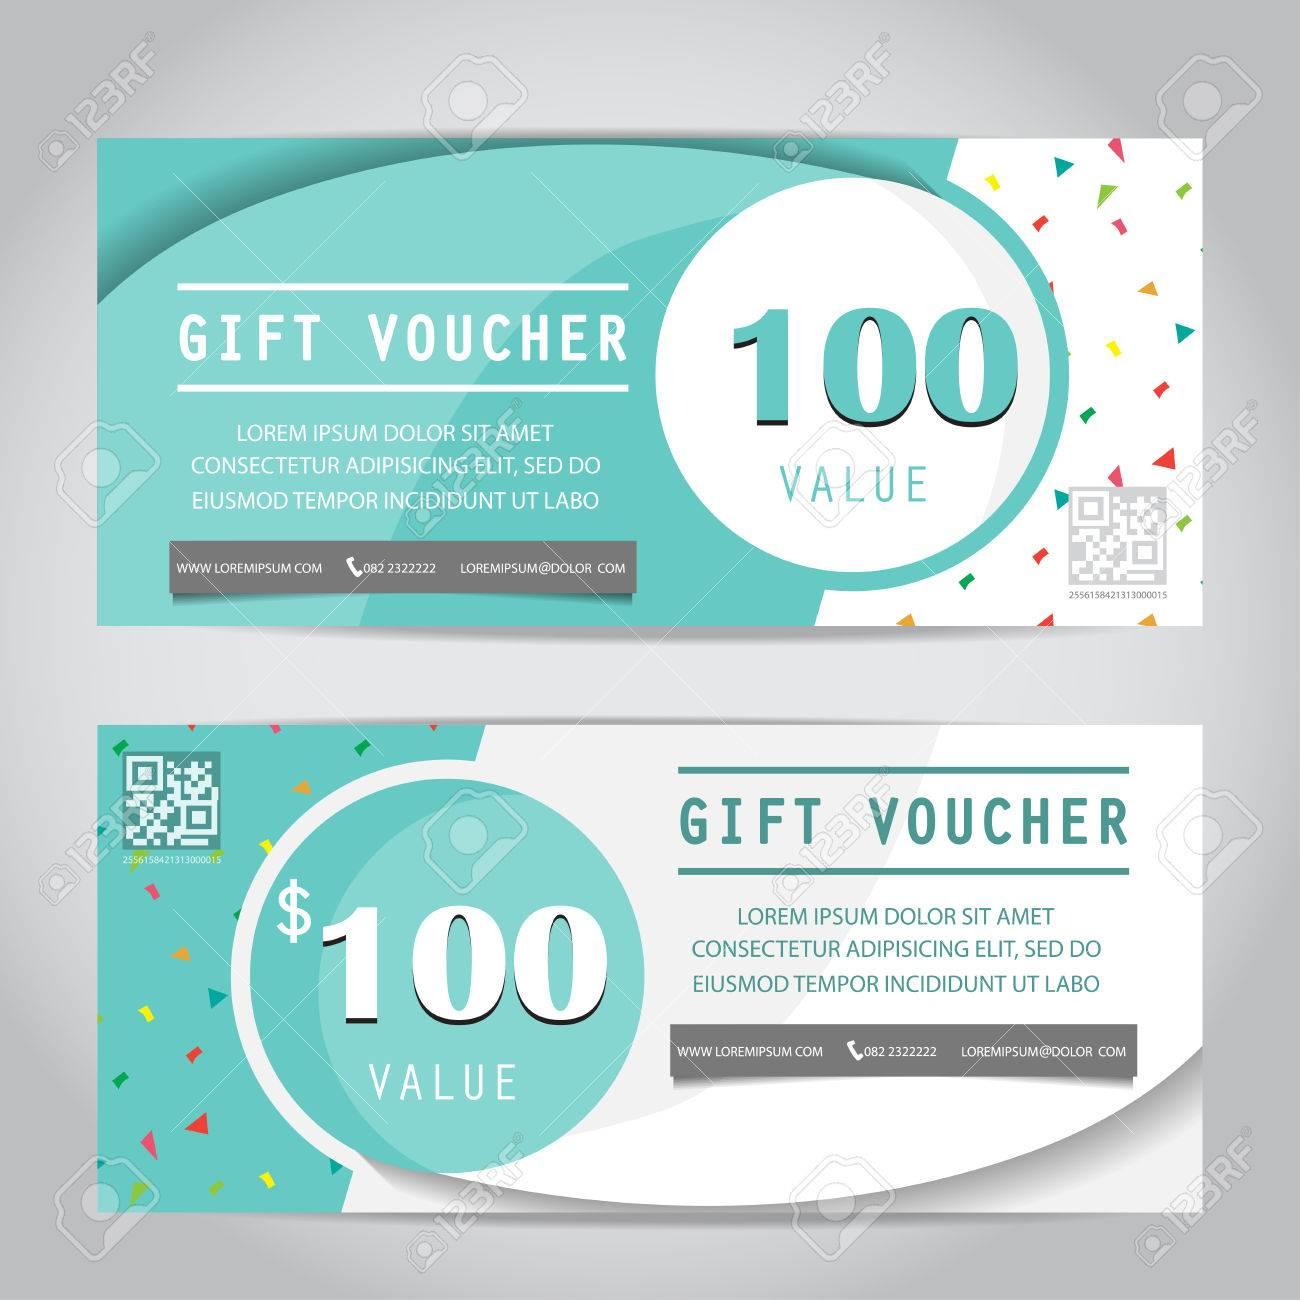 confetti gift voucher certificate coupon template, can be use for business shopping card, customer sale and promotion, layout, banner, web design. vector illustration - 48758448